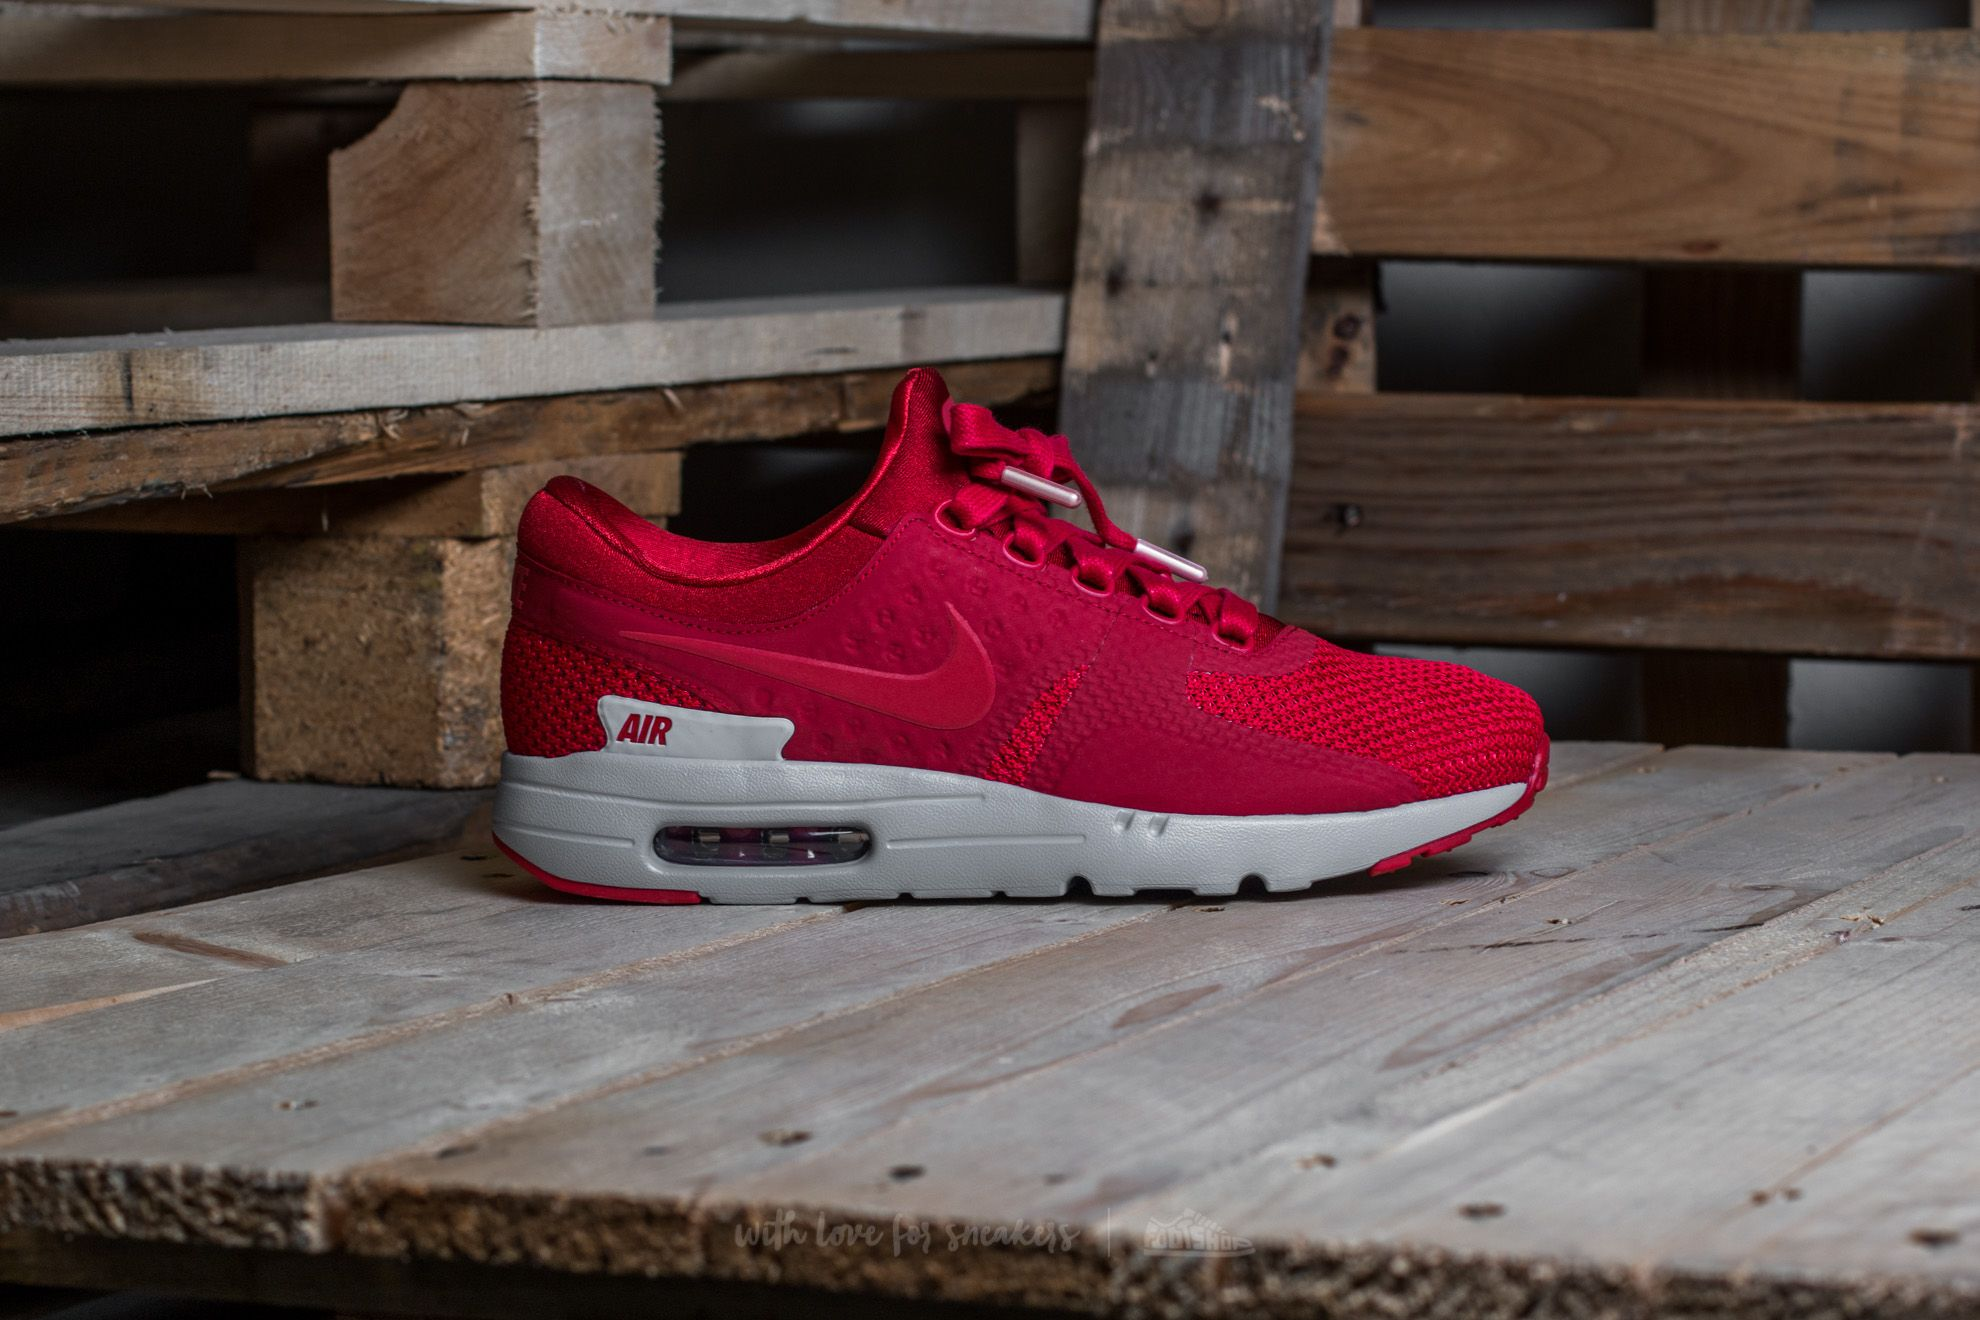 Nike Air Max Zero Premium Gym Red Gym Red Wolf Grey | Footshop